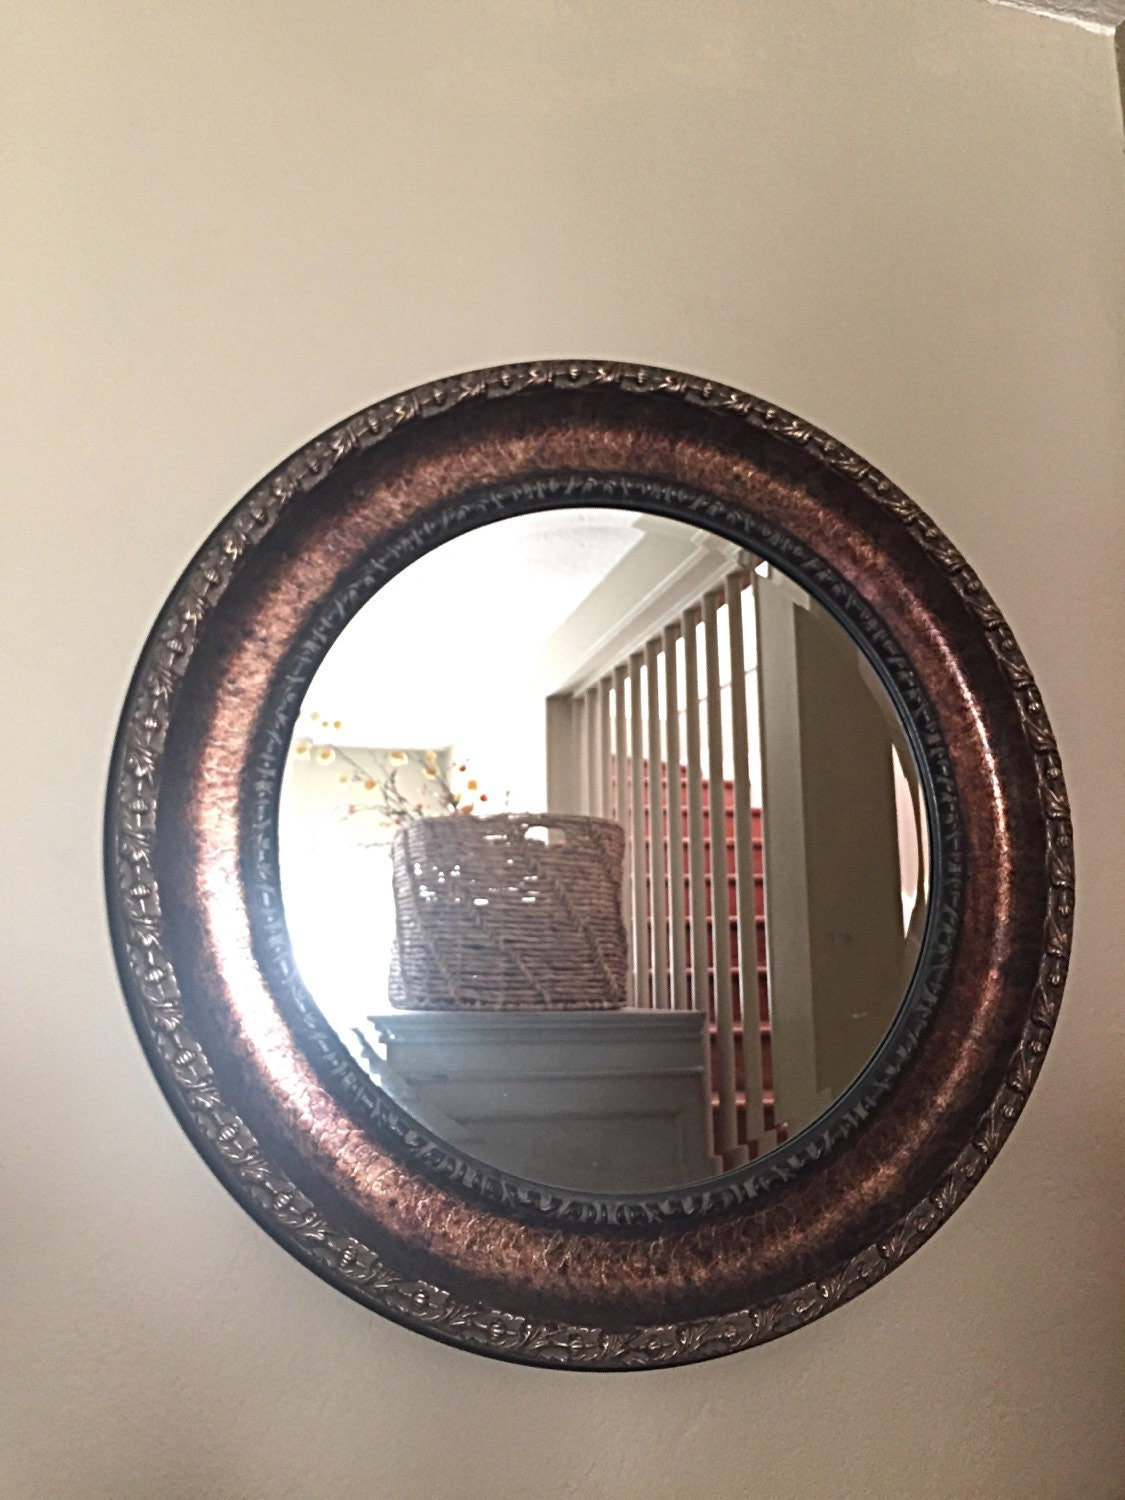 Oil Rubbed Bronze Round Bathroom Mirror Shabby Chic Ornate